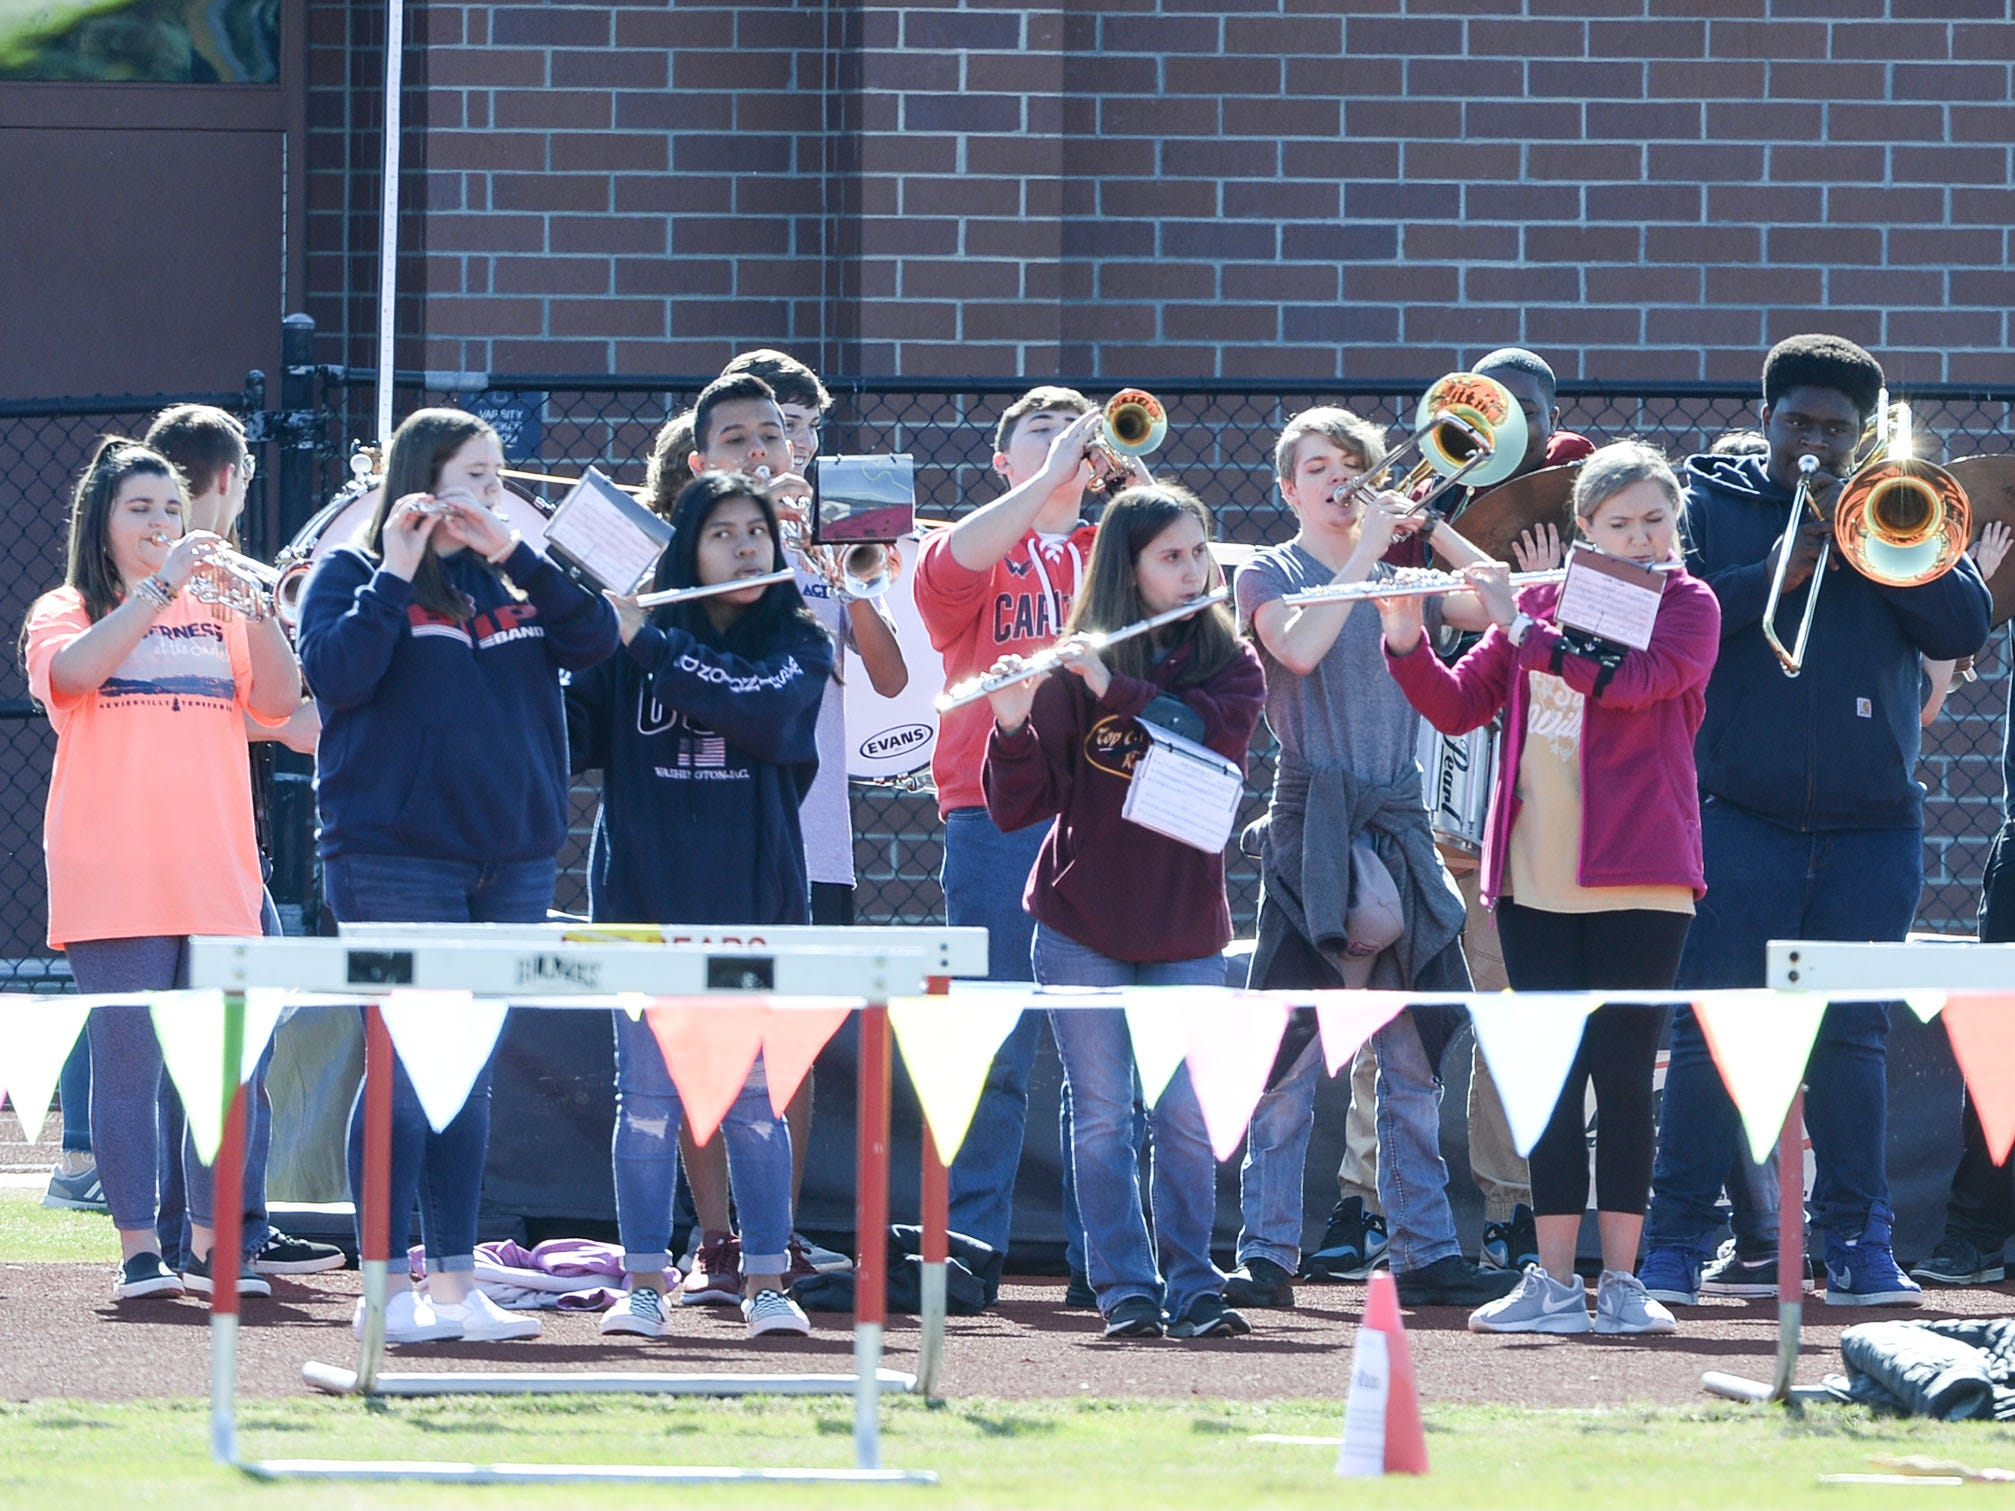 Belton-Honea Path High School band play before the Special Olympics South Carolina Area 14 Spring Games at Marlee Gambrell field at Belton-Honea Path High School Wednesday.